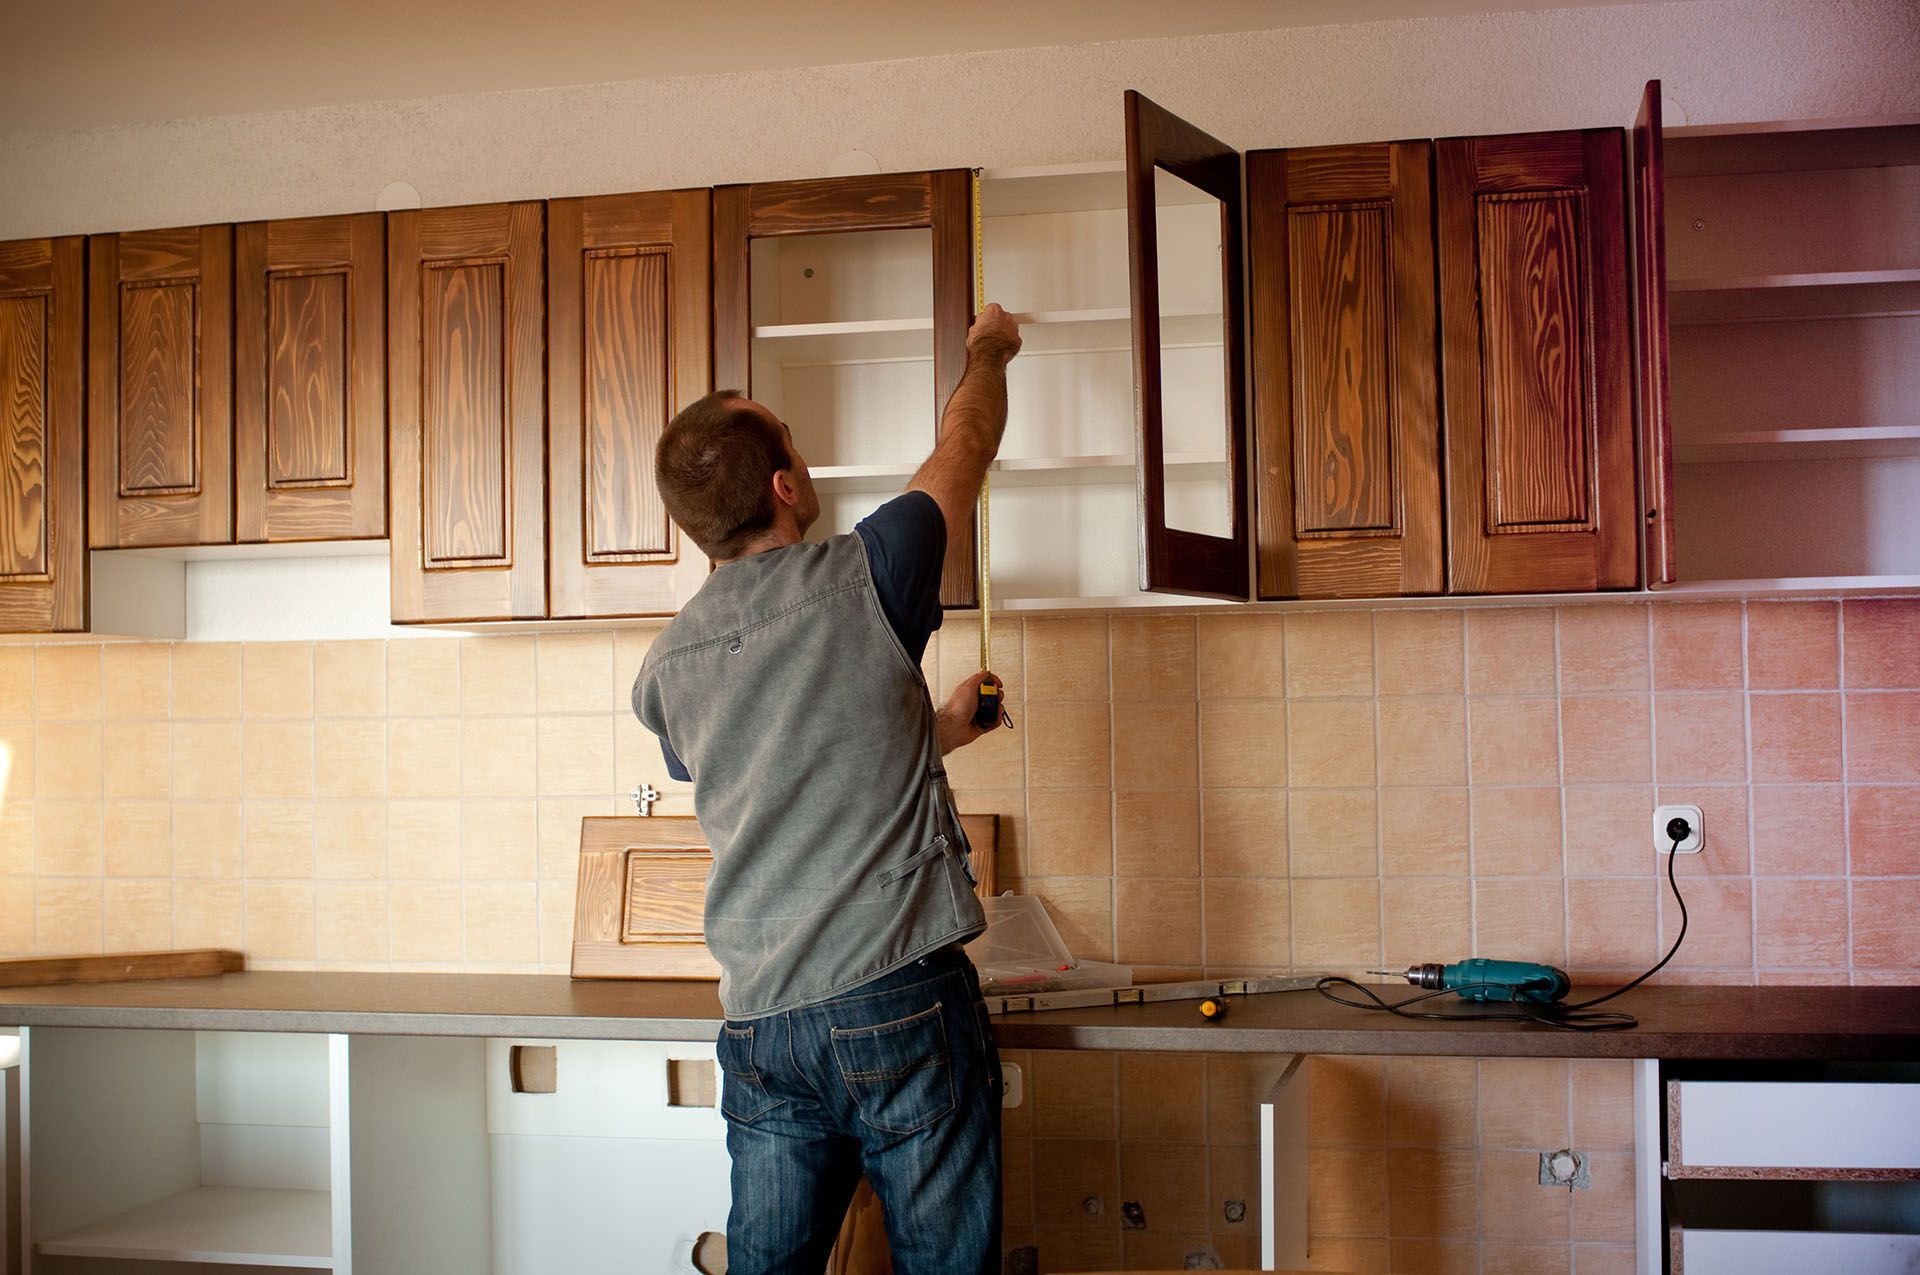 Kitchen Remodeling In Palm Beach Gardens And Wellington Fl Kitchen Remodel Small Kitchen Cabinet Dimensions Affordable Kitchen Remodeling